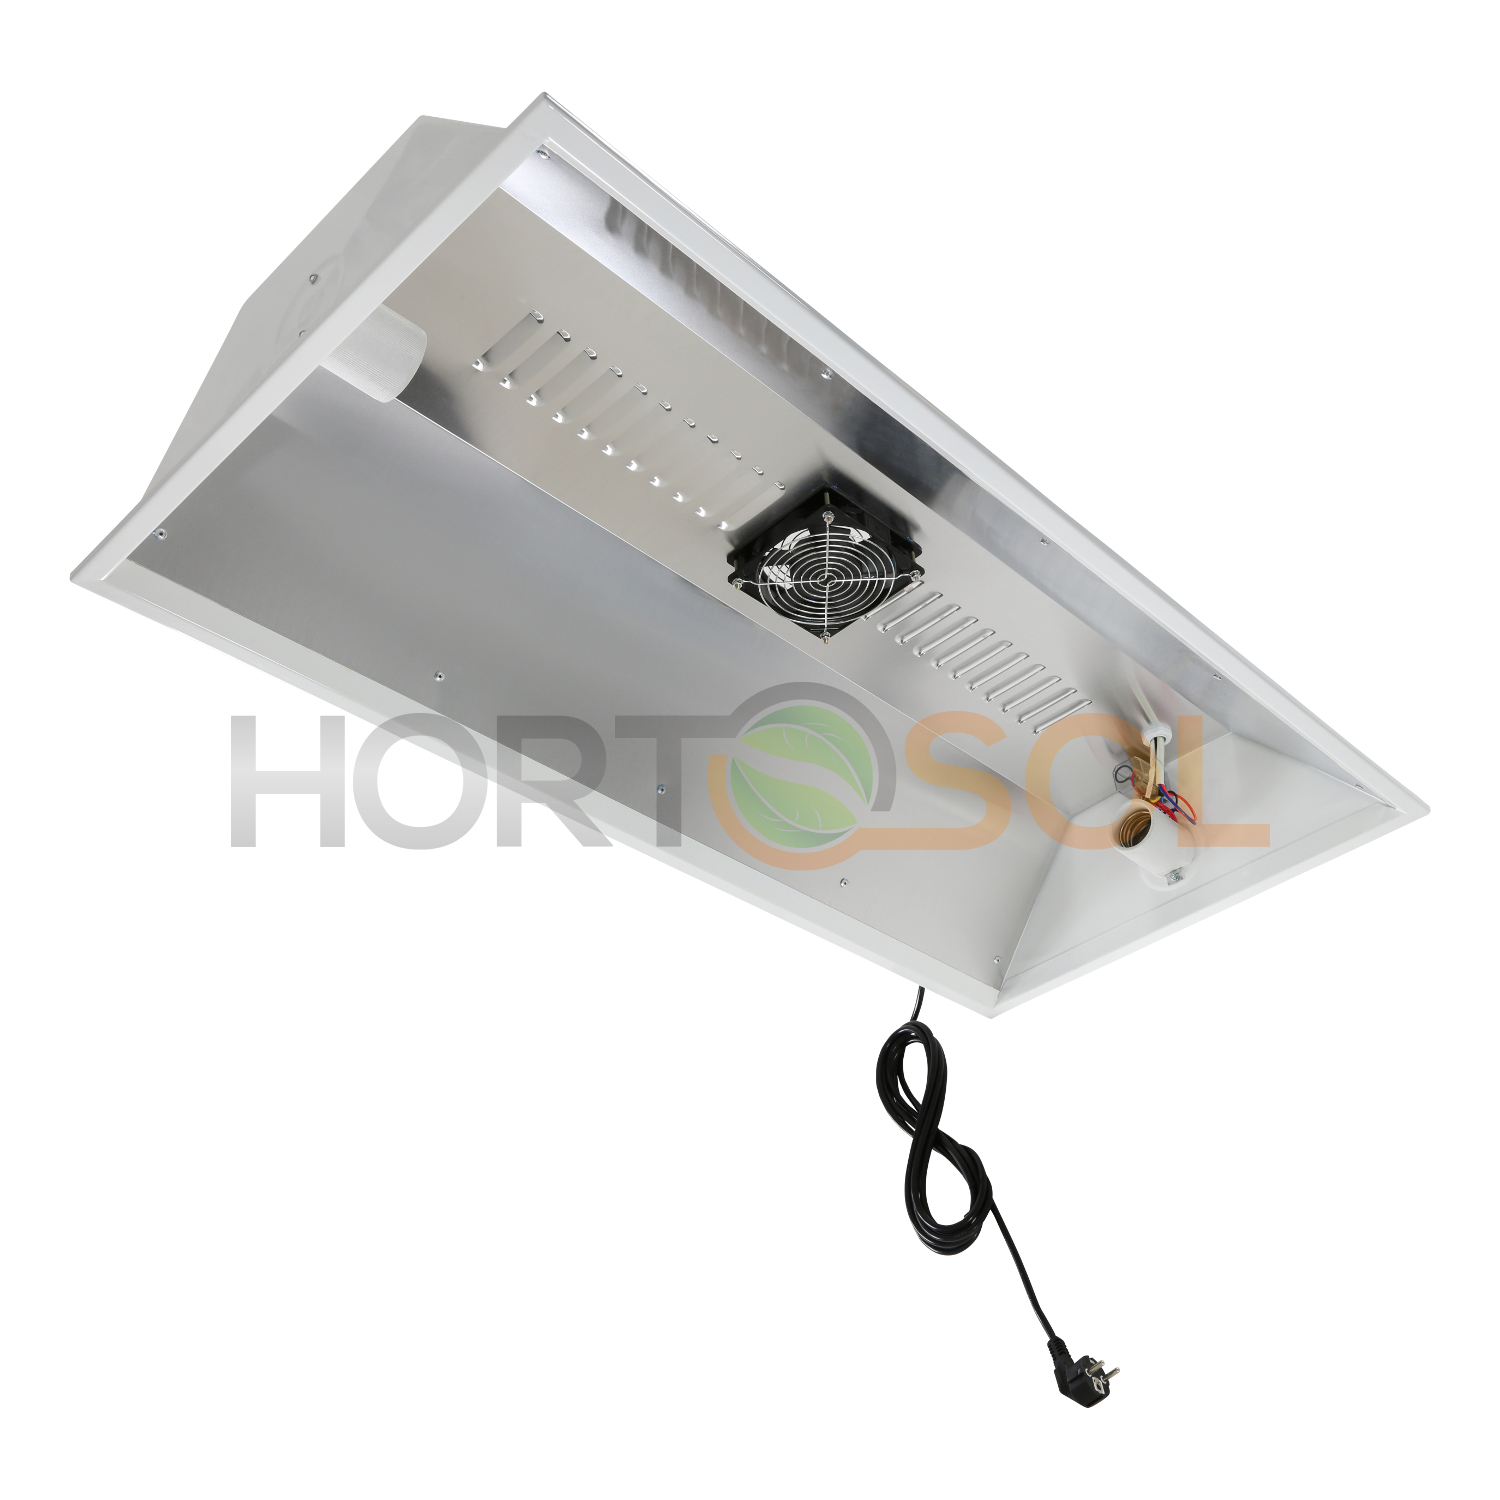 Two Lamp Reflector For 2 Cfl With Fan Hortosol